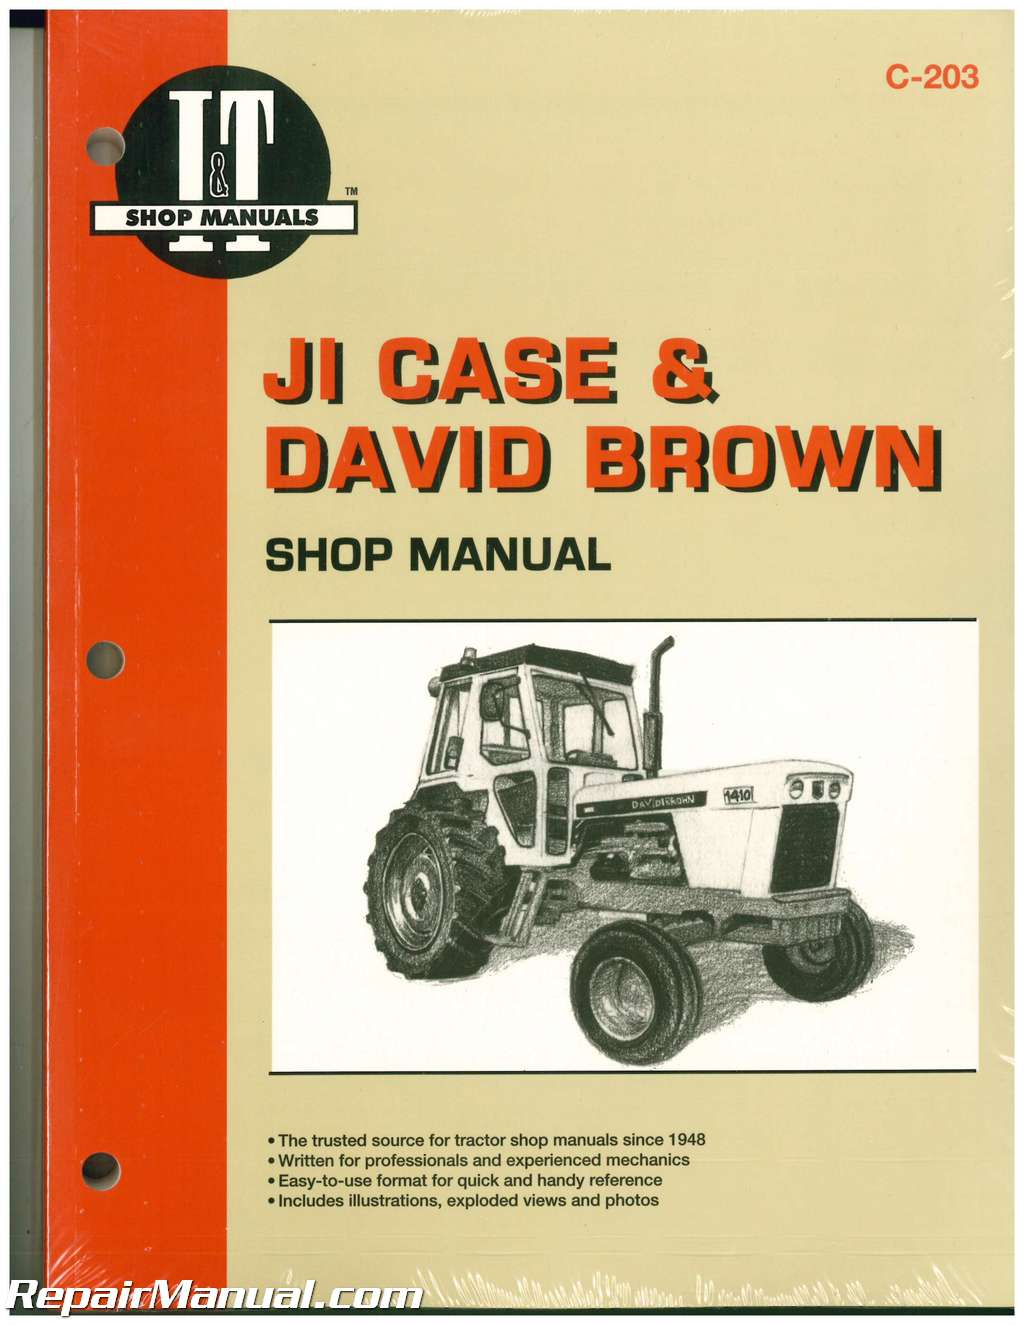 hight resolution of wrg 9303 1175 case david brown tractor wiring diagram john deere 950 tractor parts diagrams on 1 2 hp kohler engine wiring